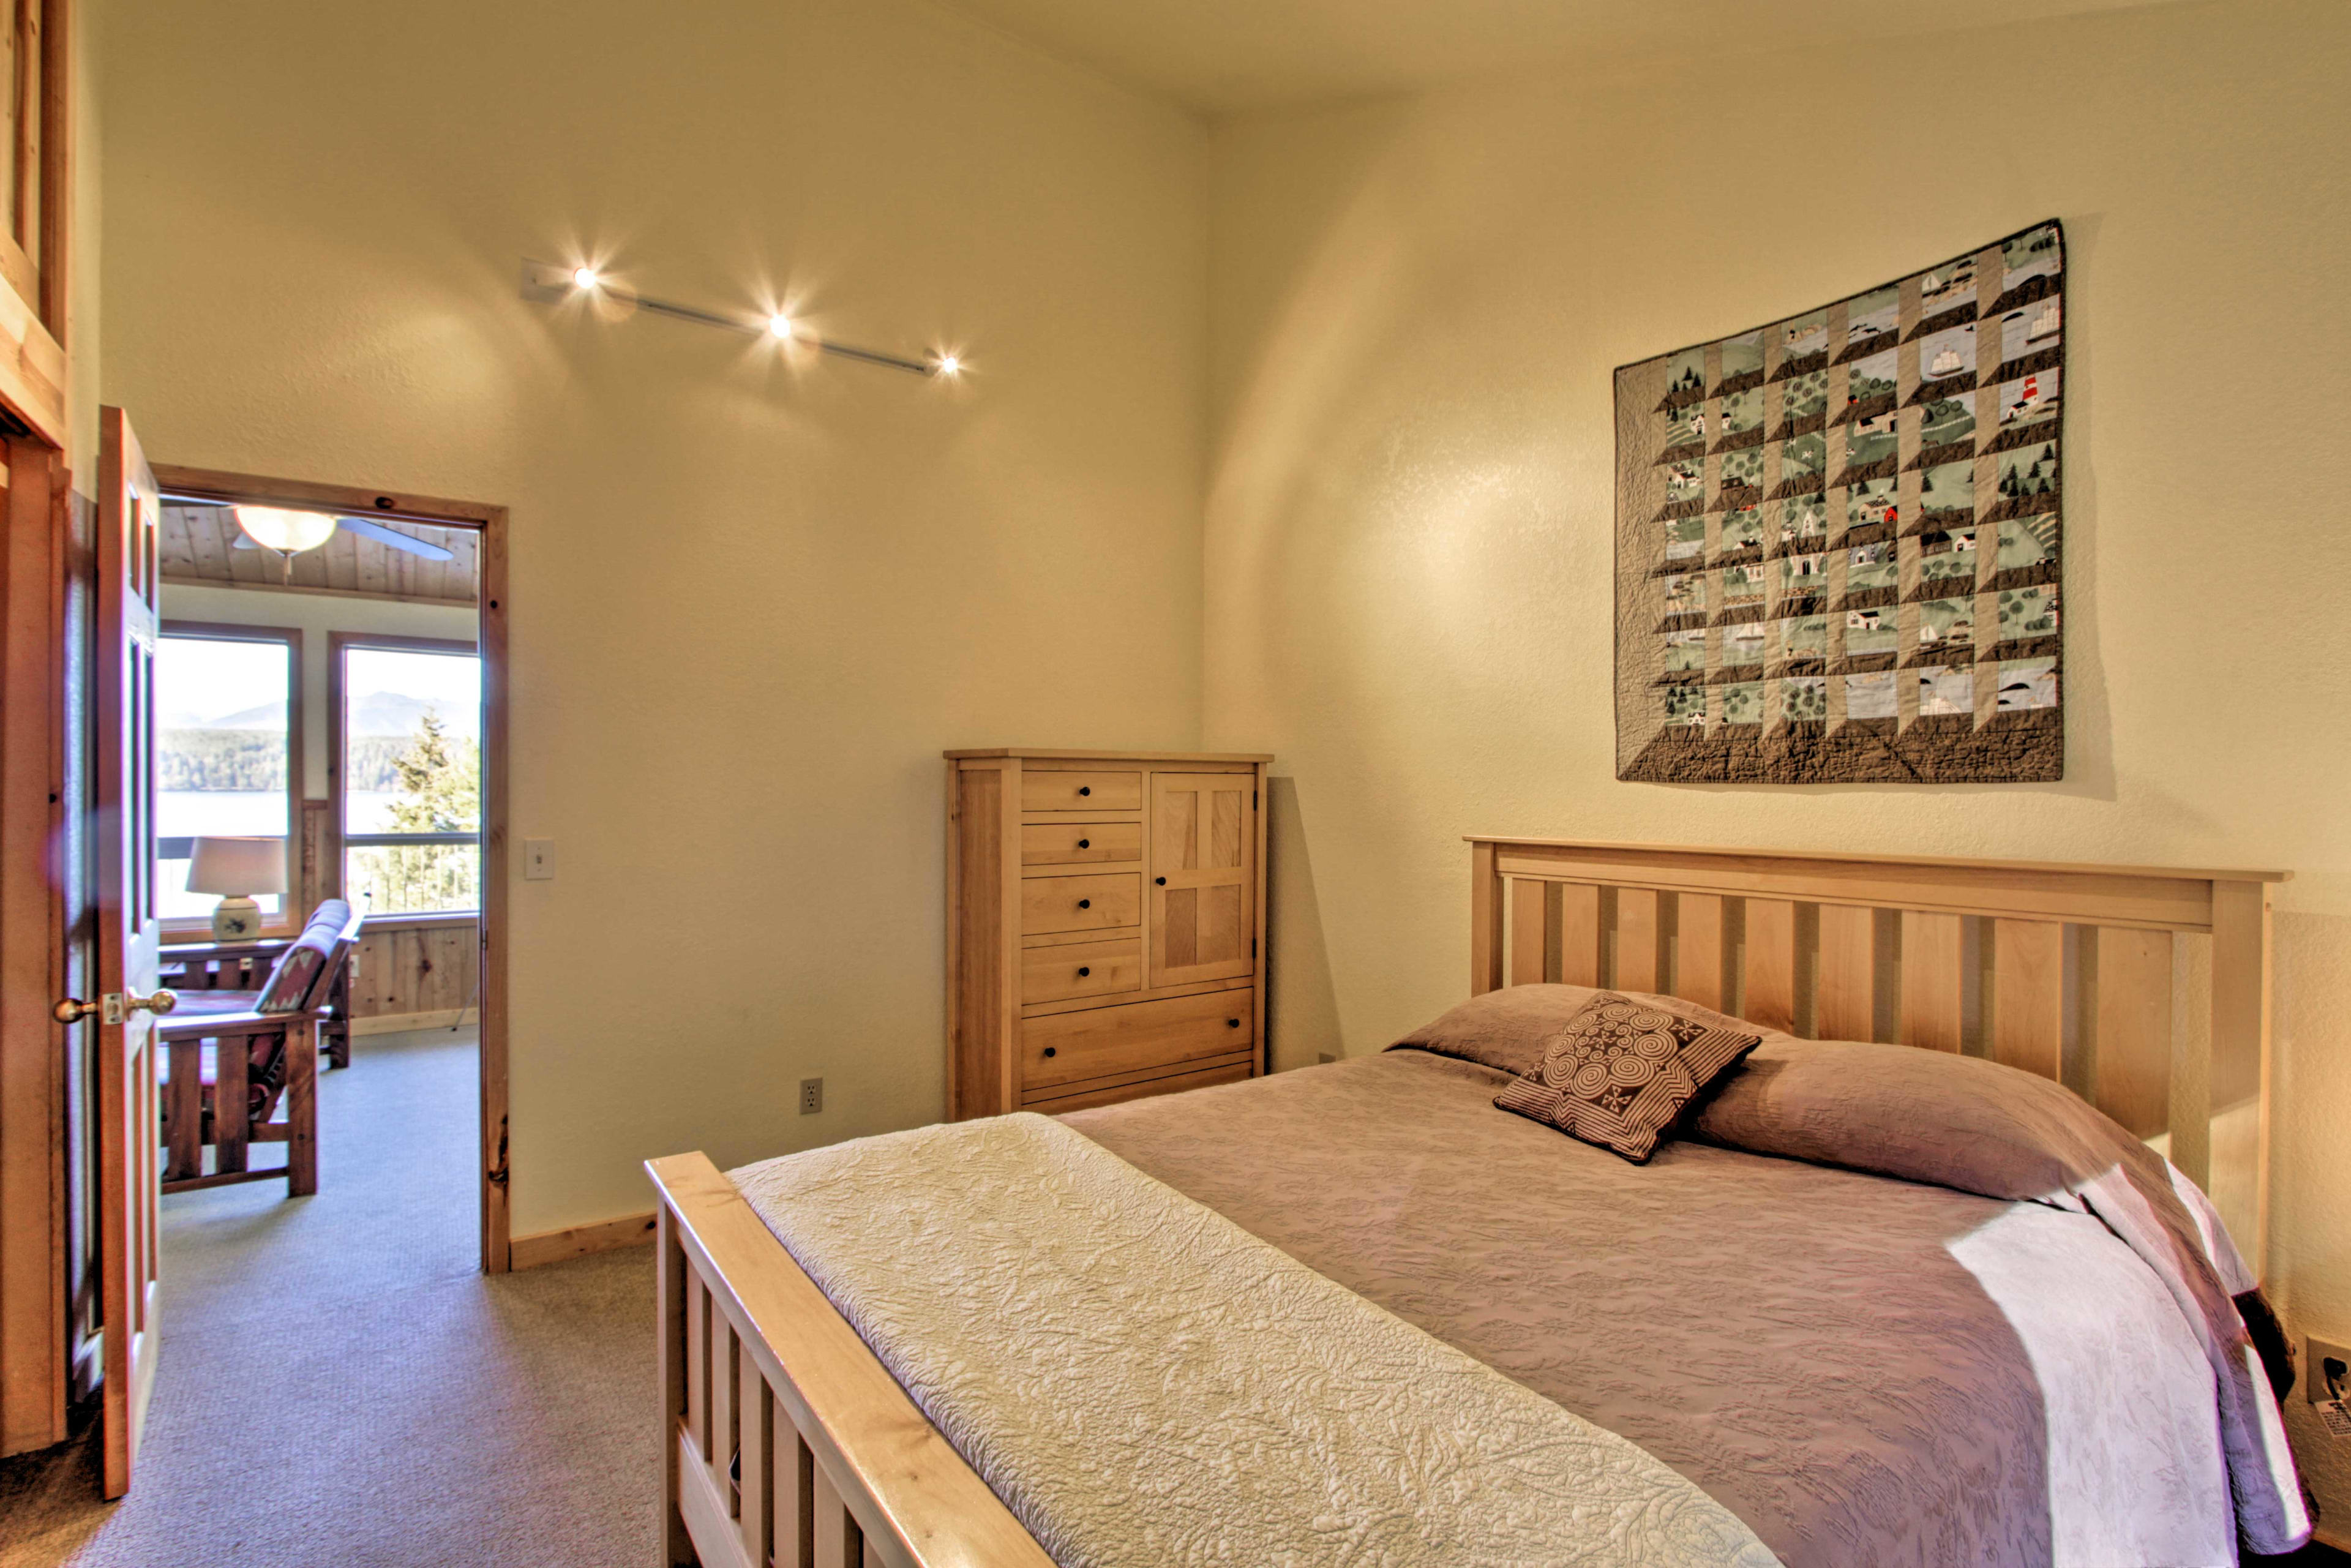 The bedroom boasts plenty of storage and a dresser.